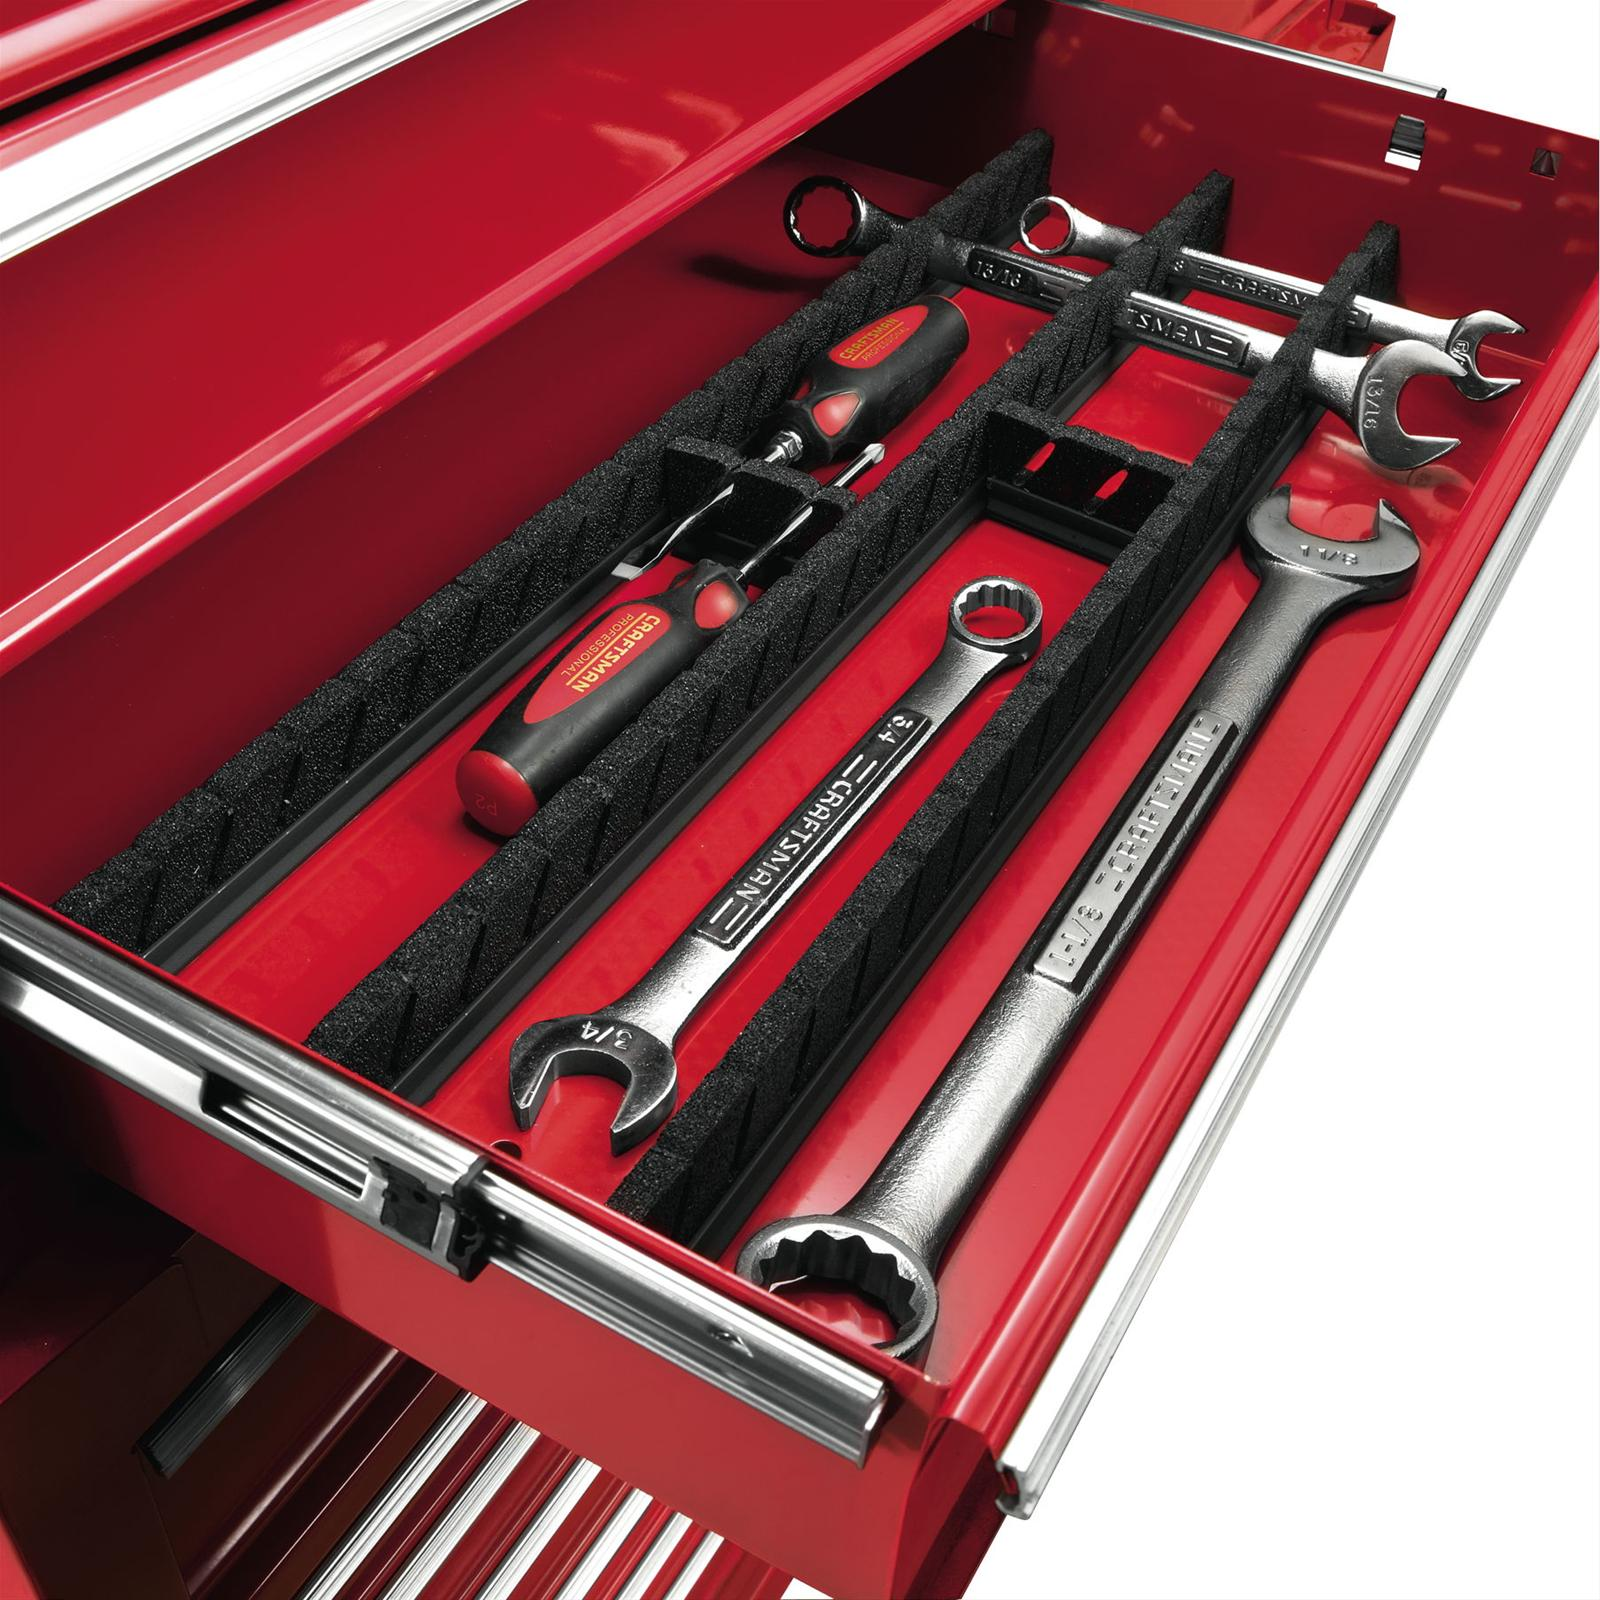 Craftsman Toolbox Drawer Divider Systems 009 65397 Free Shipping On Orders Over 99 At Summit Racing